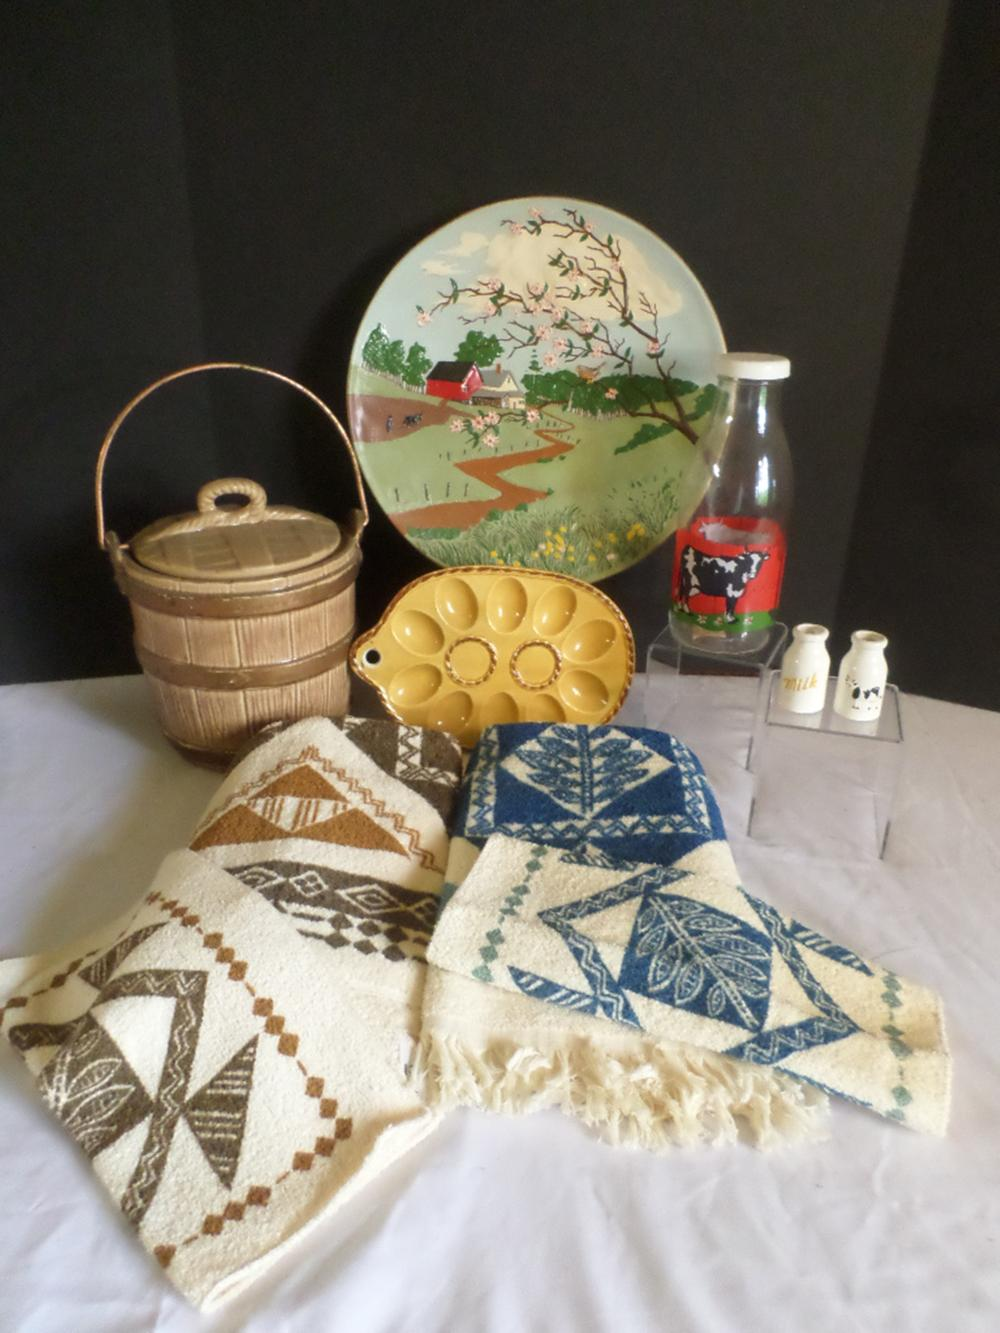 Ceramic Barrel Cookie Jar, Kitchen Towels and Other Items